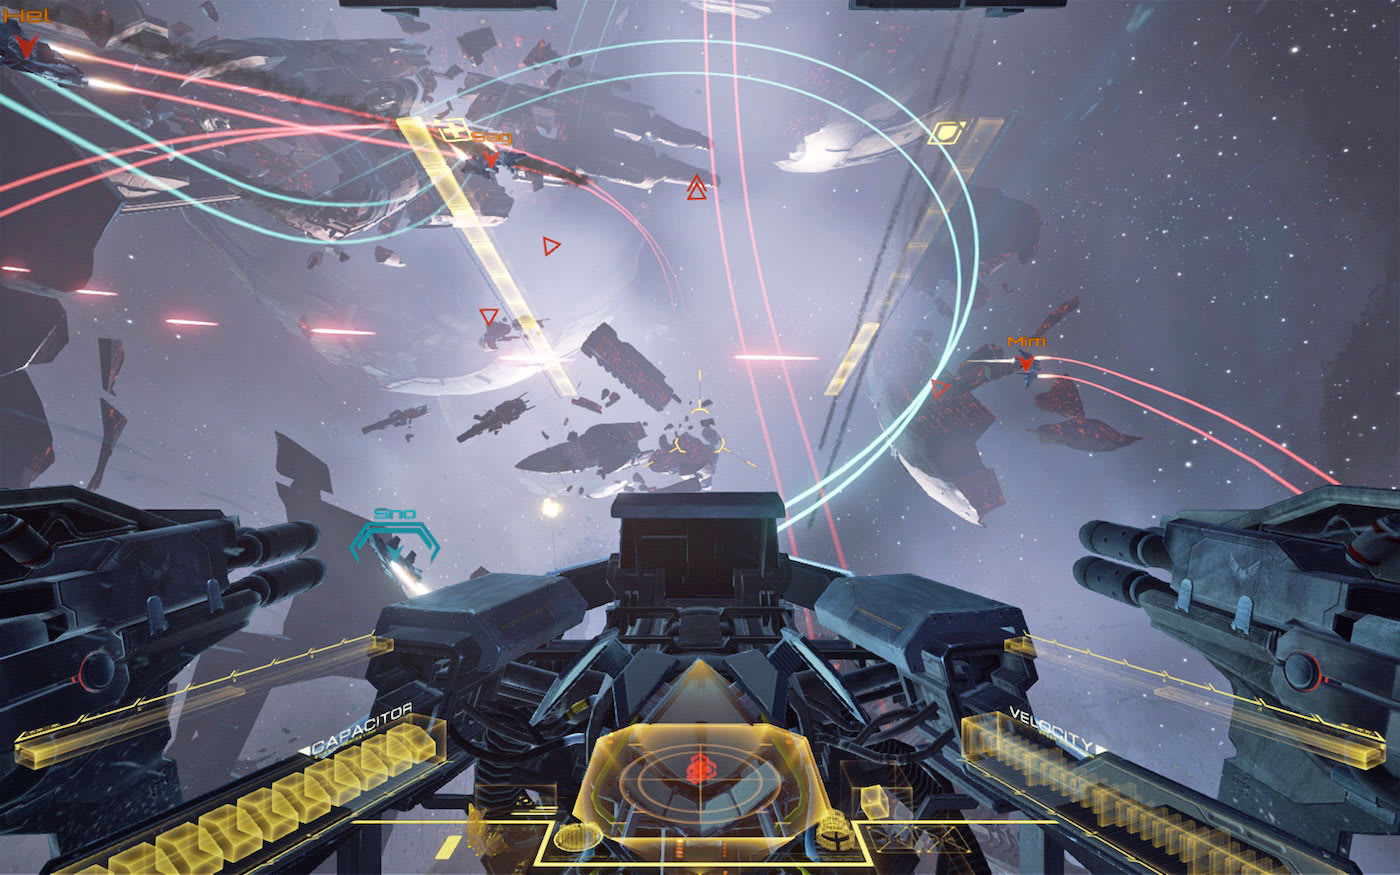 EVE: Valkyrie' won't require VR come September